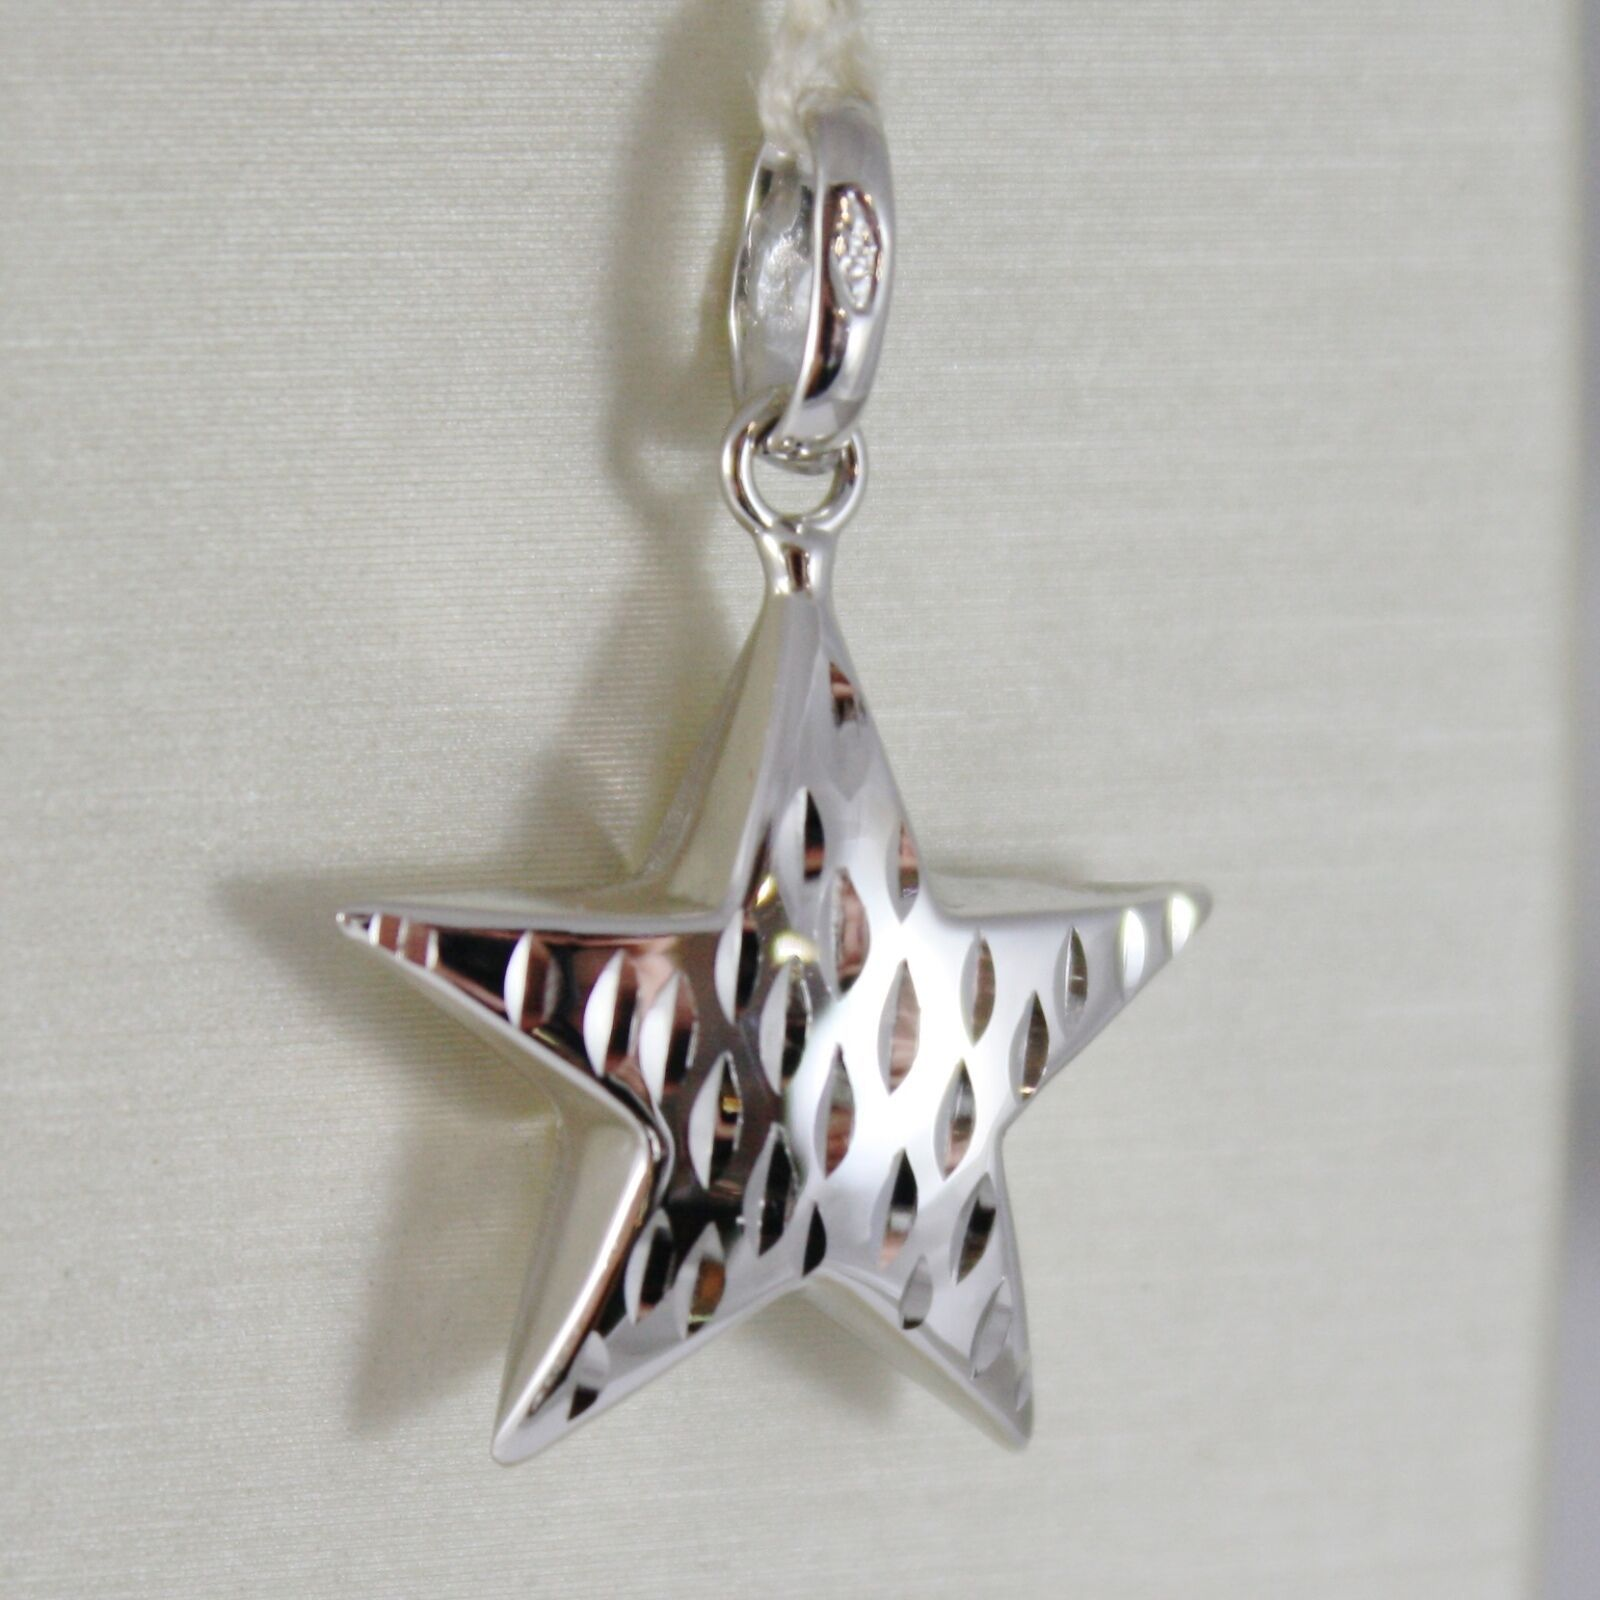 18K WHITE GOLD ROUNDED STAR PENDANT CHARM 26 MM WORKED & SMOOTH, MADE IN ITALY